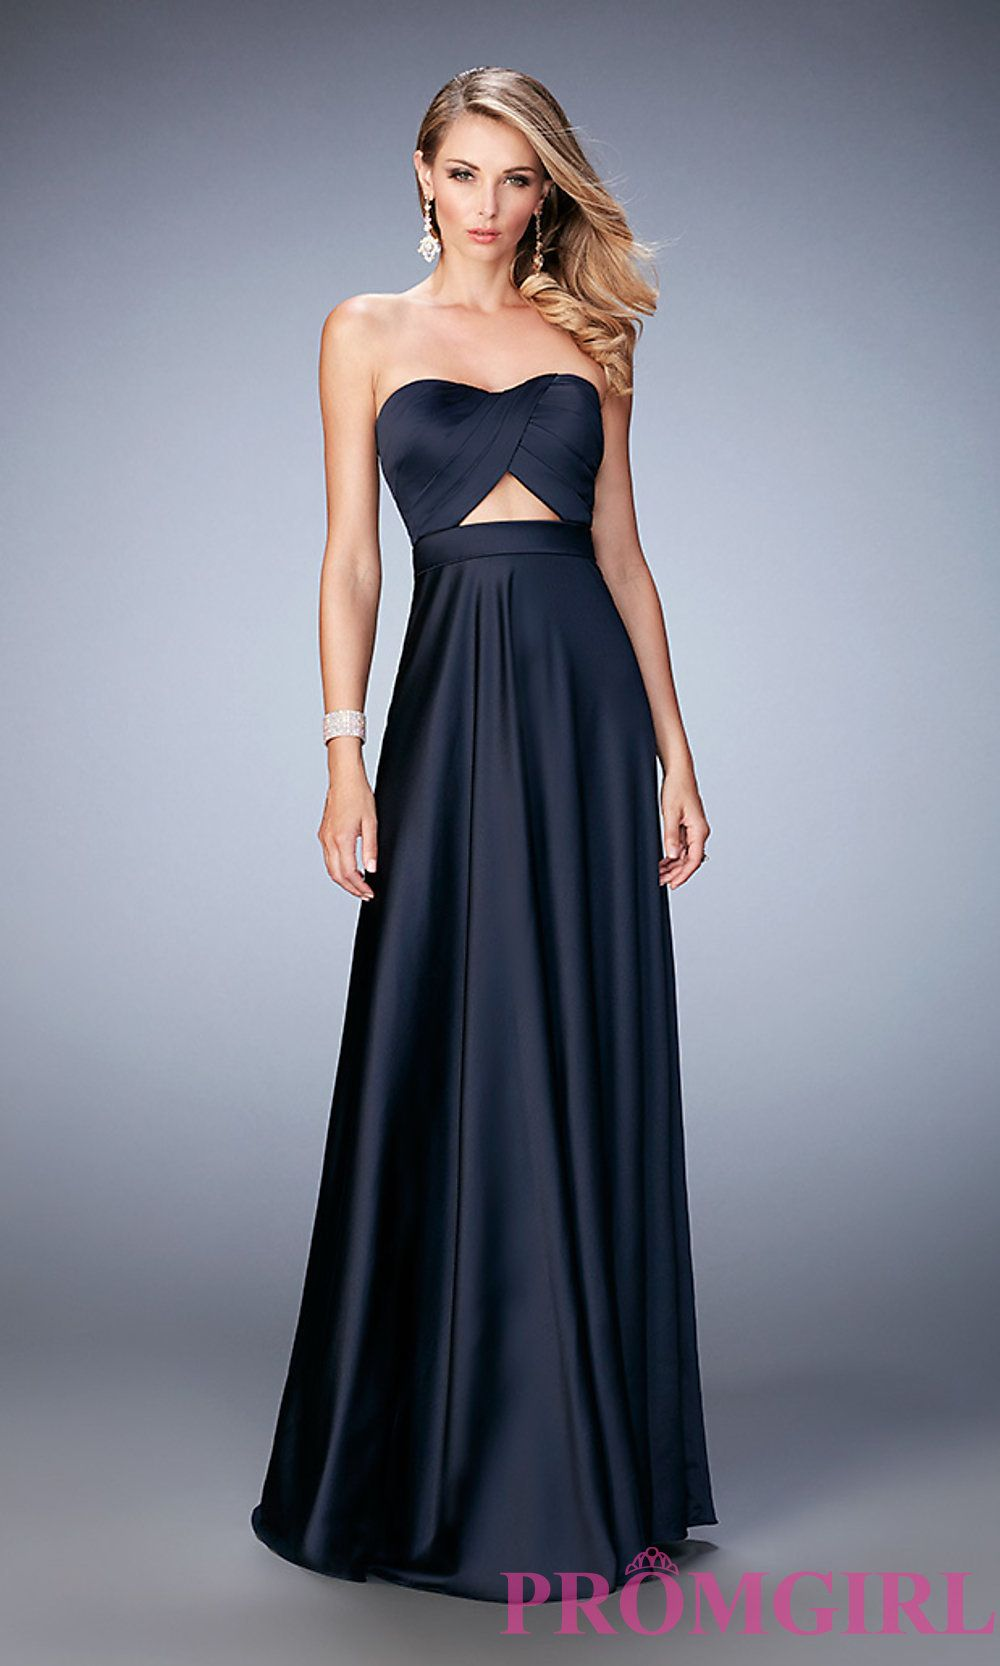 Swatchattribute what to wear pinterest elegant evening